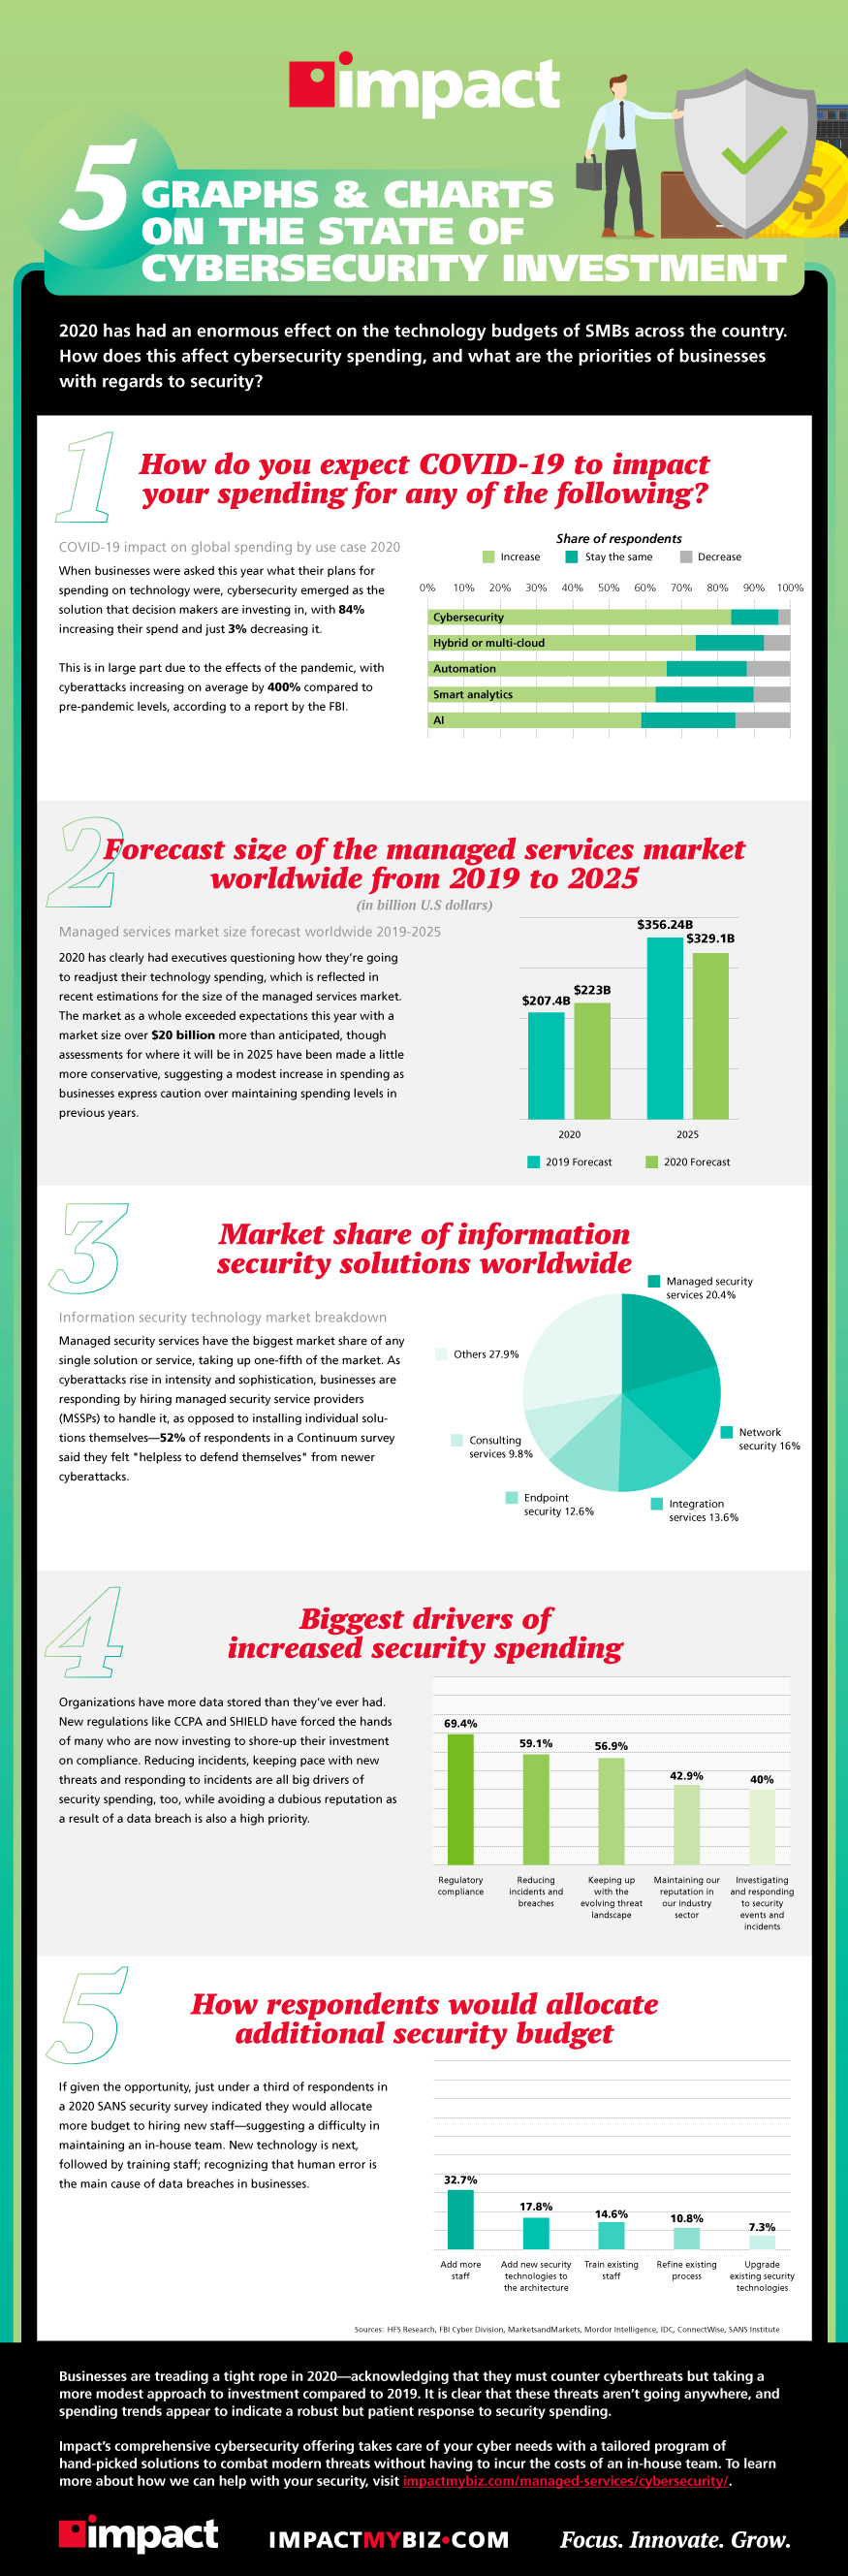 5 graphs and charts on the state of cybersecurity